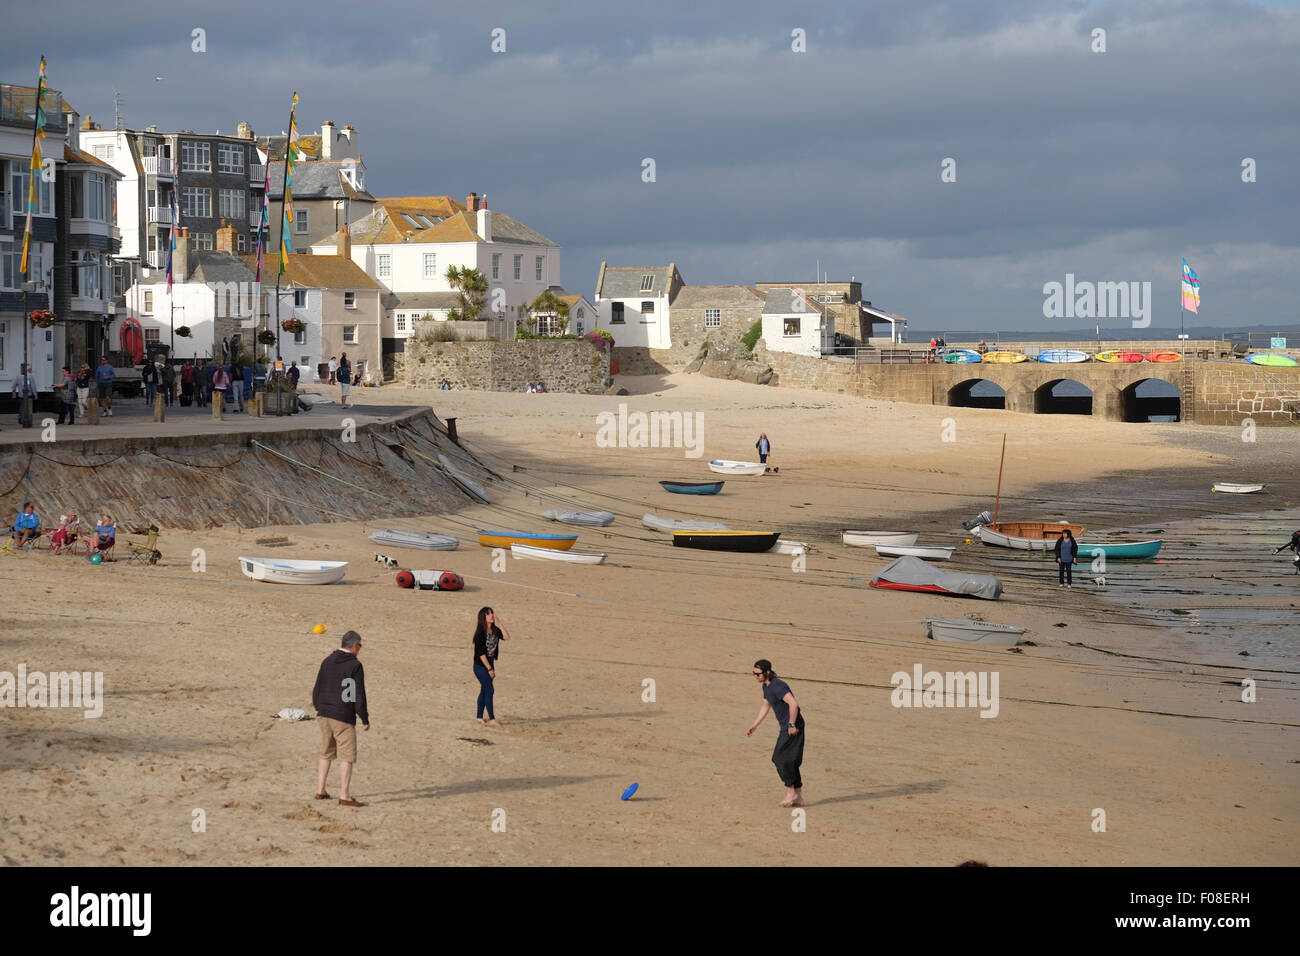 St Ives, Cornwall, UK:  Three family members playing Frisbee on the beach in the late afternoon sun - Stock Image